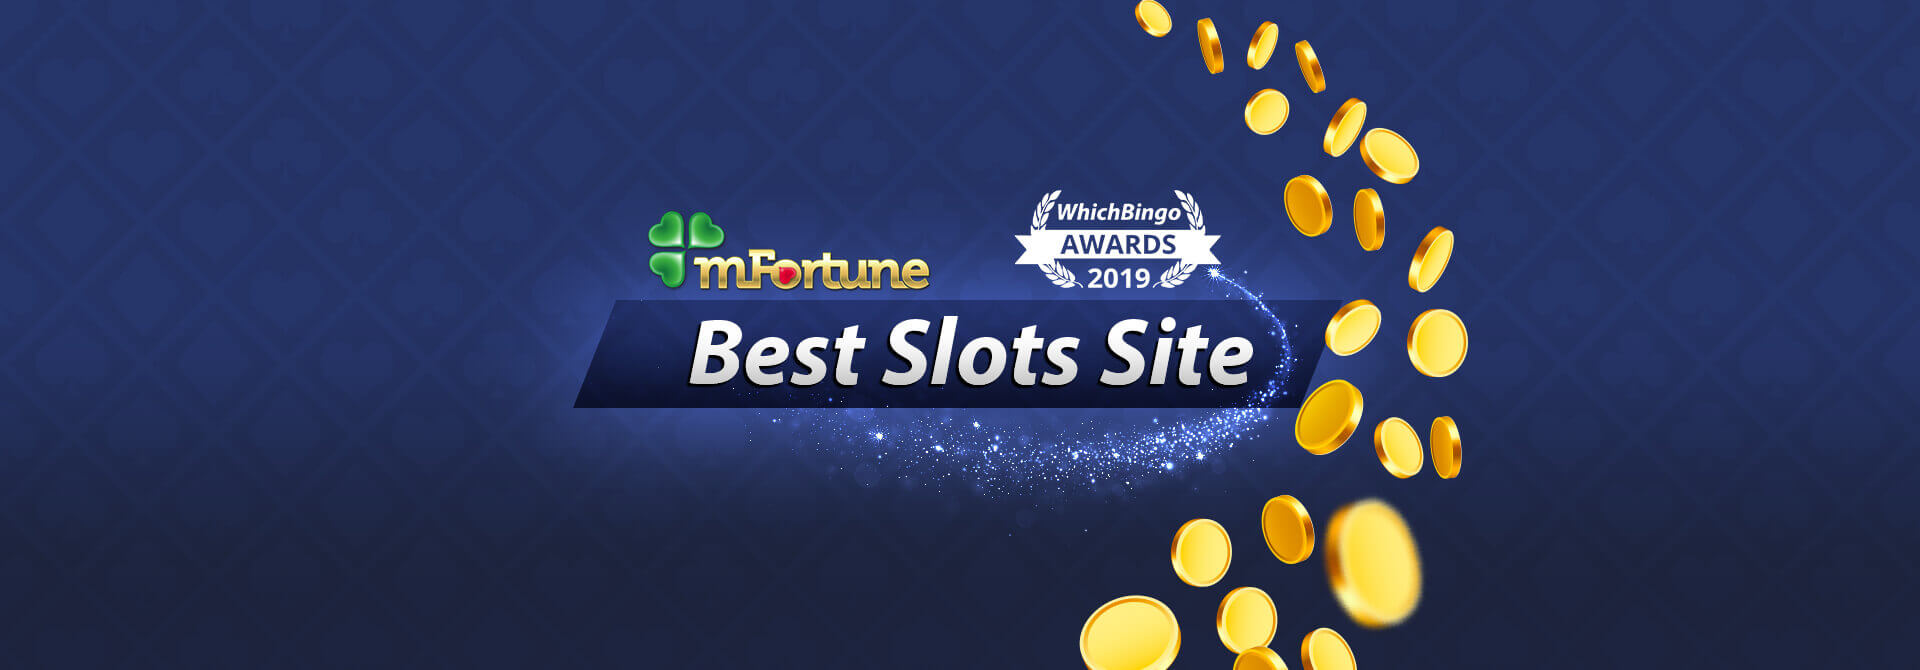 mFortune Named Best Slots Site at the 2019 WhichBingo Awards!